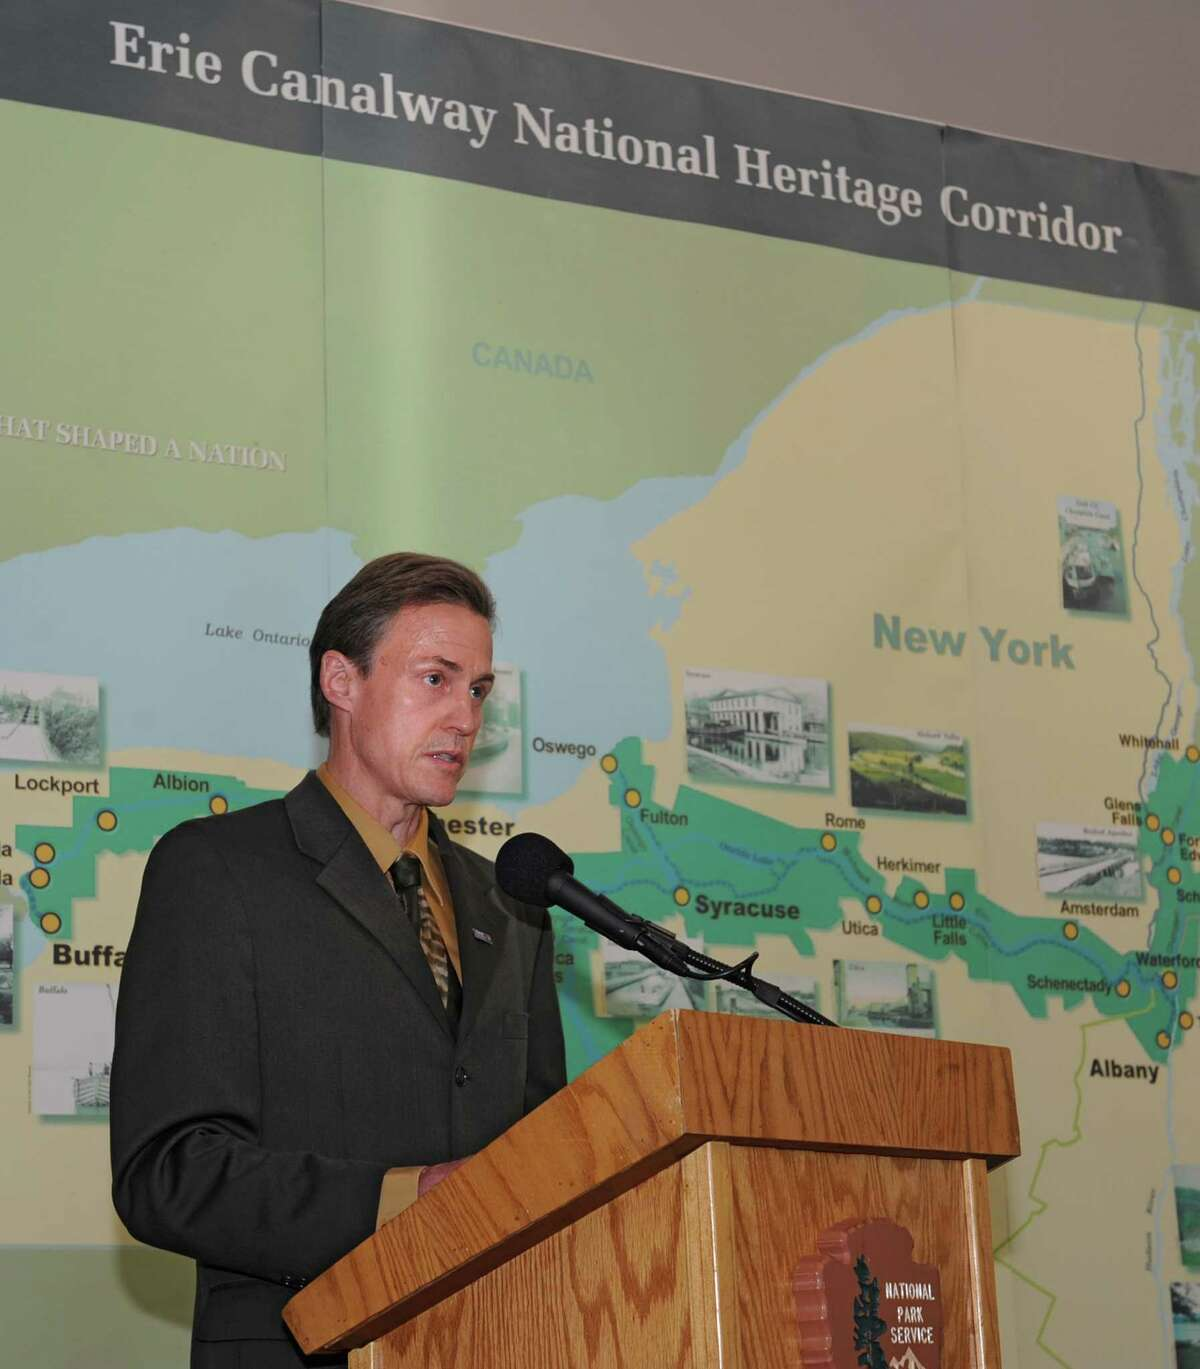 Bob Radliff, director, Erie Canalway National Heritage Corridor, speaks during a dedication ceremony in which the New York State Barge Canal is listed on the National Register of Historic Places at the Erie Canalway National Heritage Corridor, Visitor Center Wednesday, Oct. 22, 2014 in Waterford, N.Y. (Lori Van Buren / Times Union)